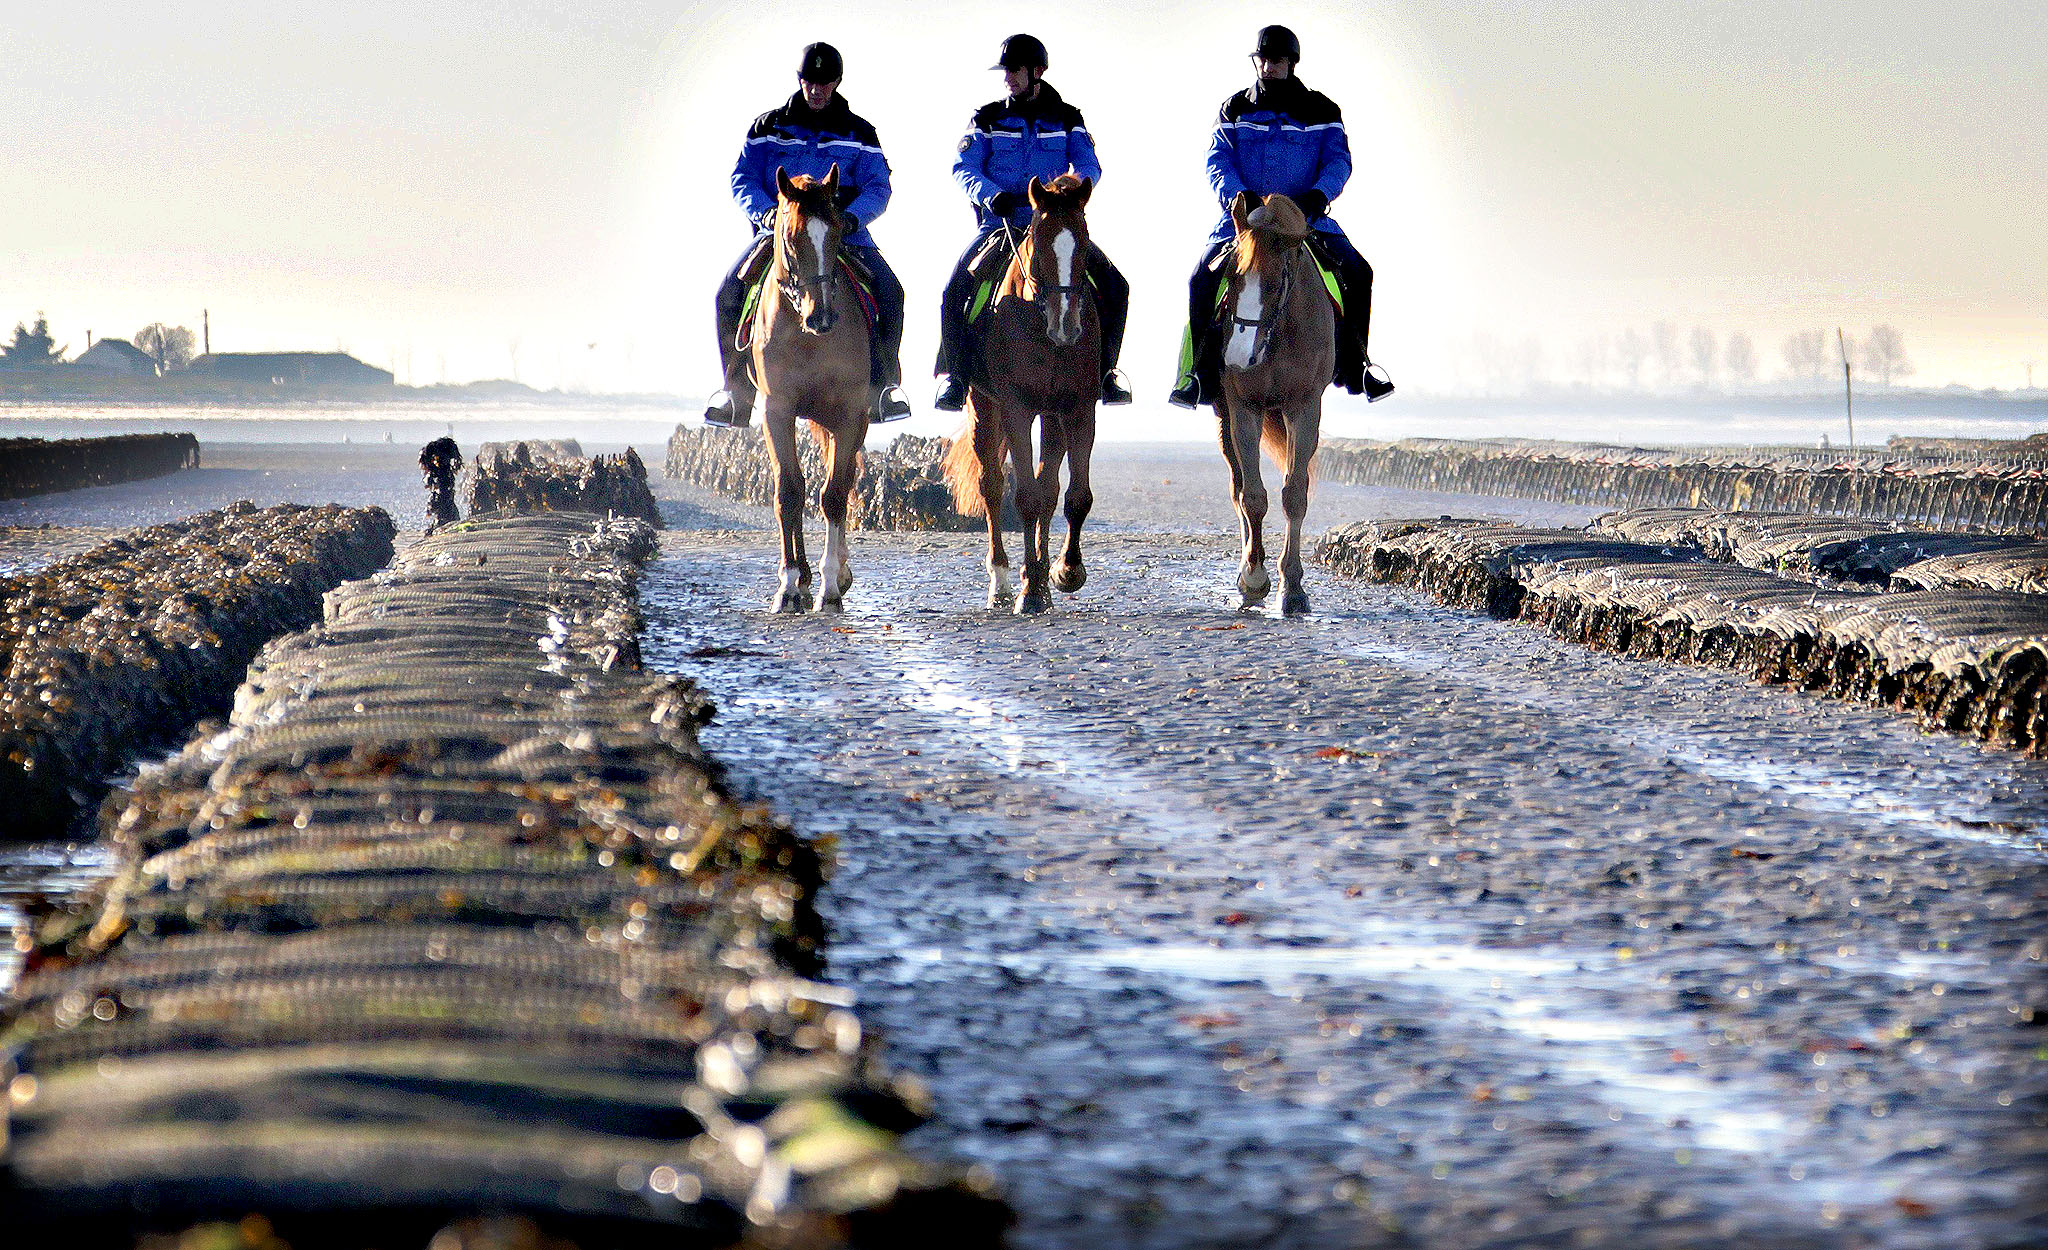 Horse mounted policemen patrol oyster cultures to protect them from thieves on December 10, 2013 in G fosse-Fontenay, northwestern France.